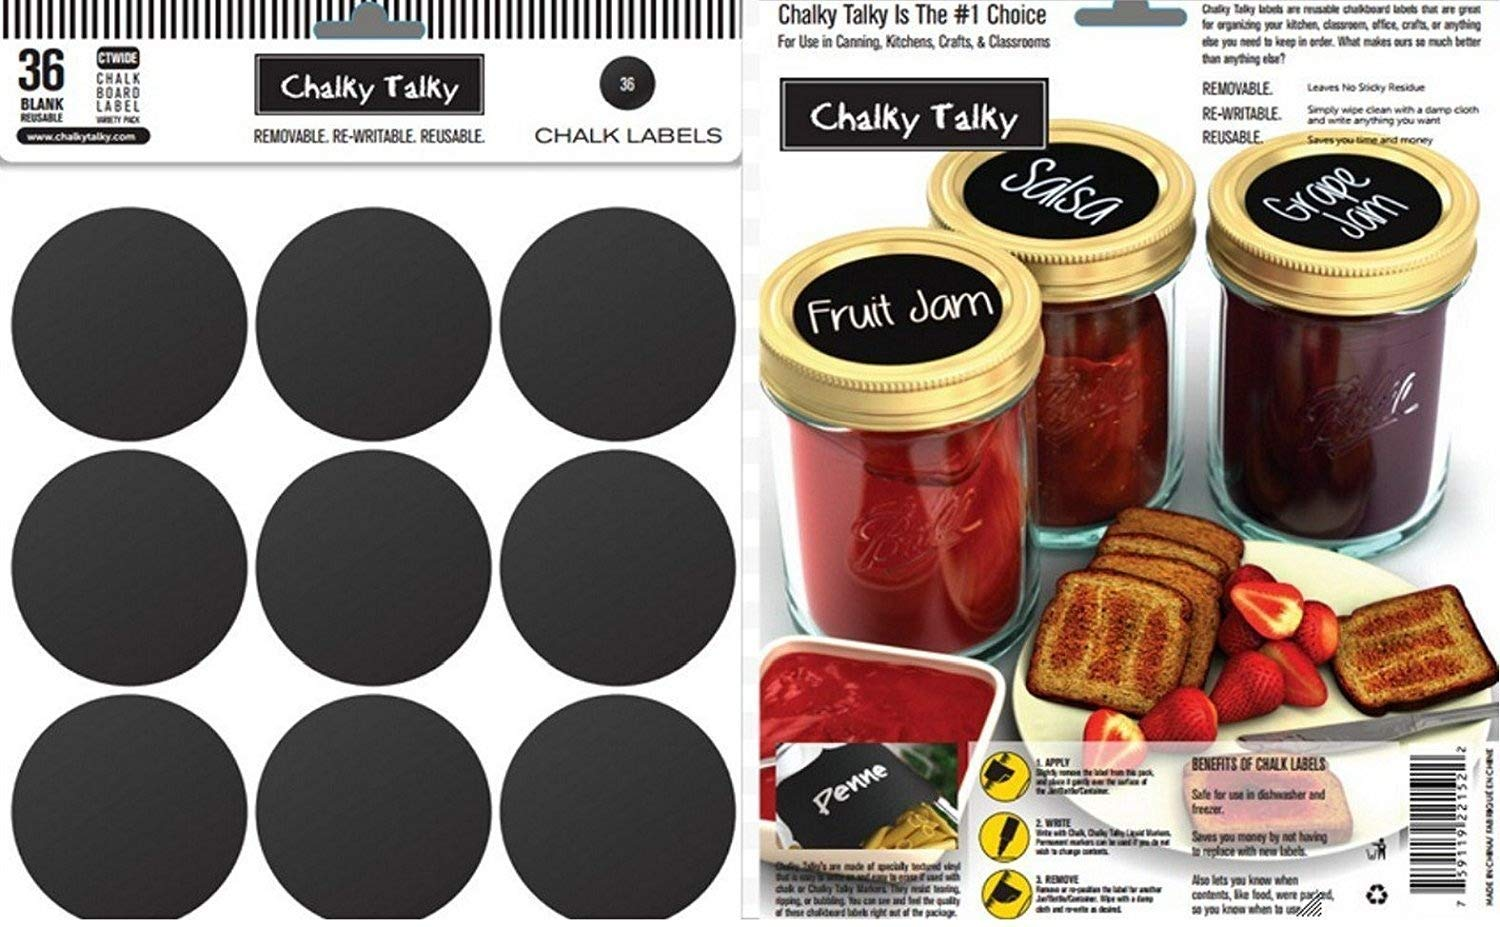 "Chalky Talky 36 Wide Mouth Mason Jar Reusable Chalkboard Labels - 2.5"" Fit Ball, Kerr, Canning Lids"